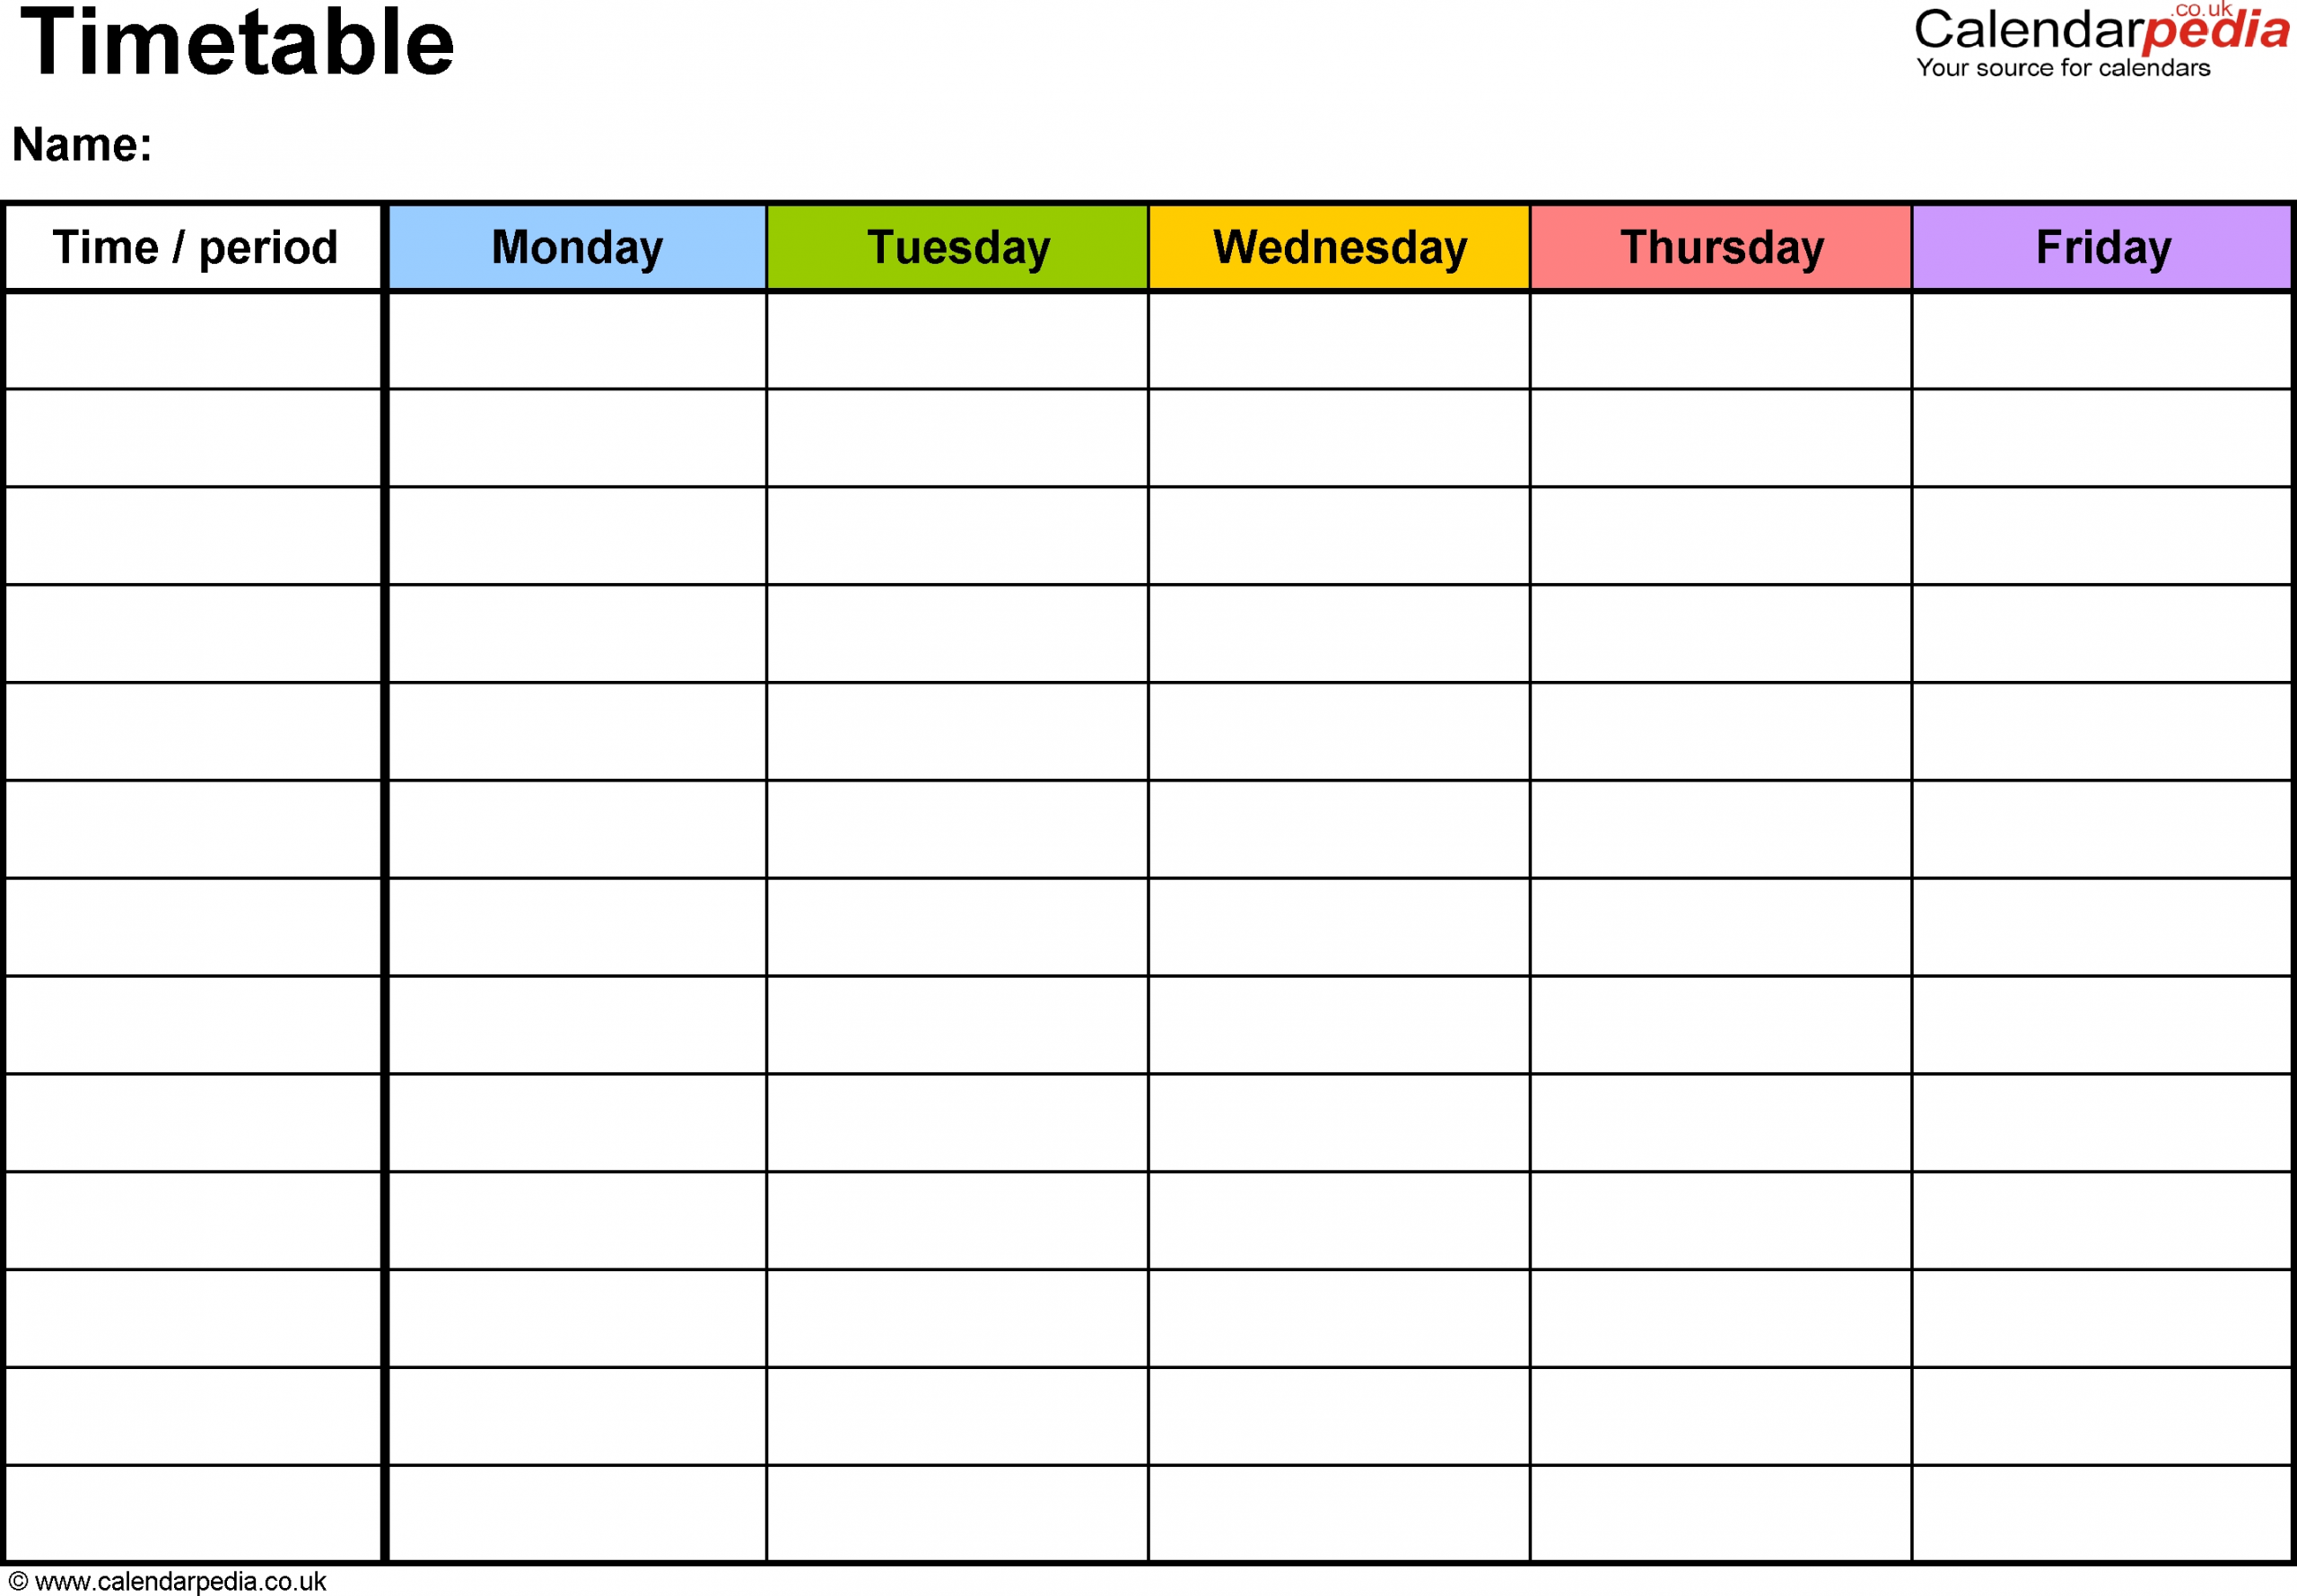 Download Word Timetable Template 1: Landscape Format, A4, 1